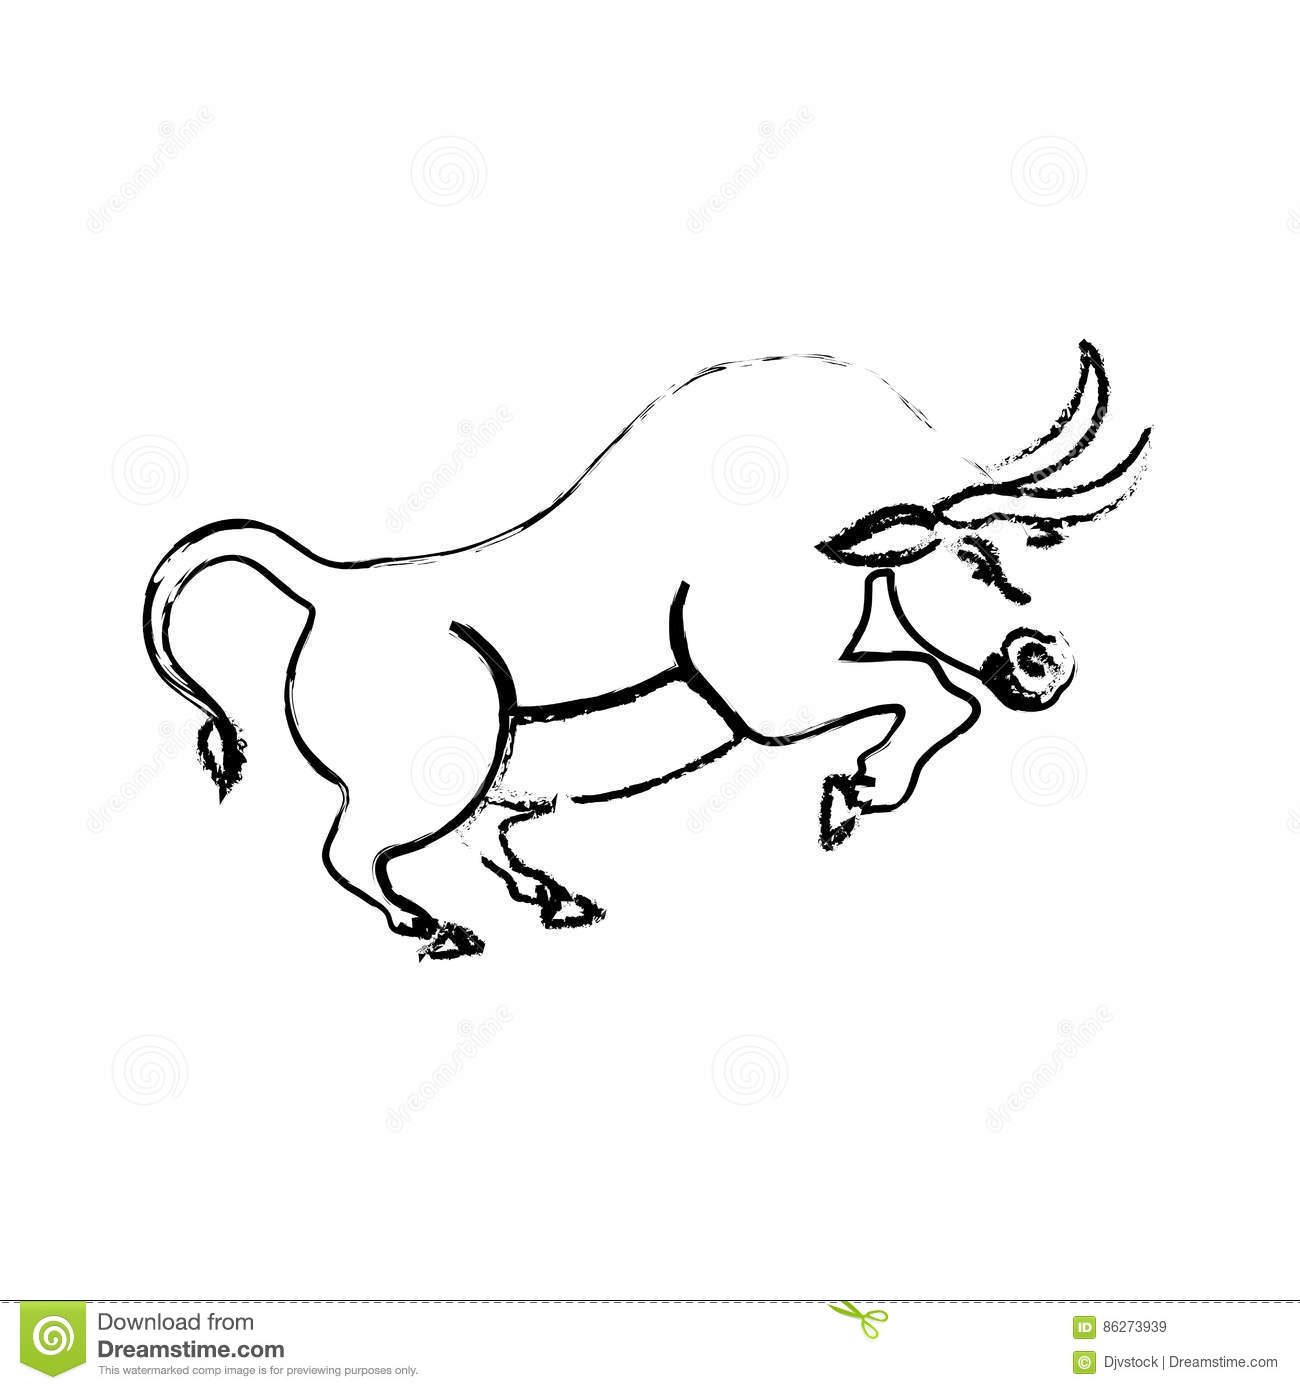 Bull Stock Market Symbol Stock Illustration Illustration Of Stock